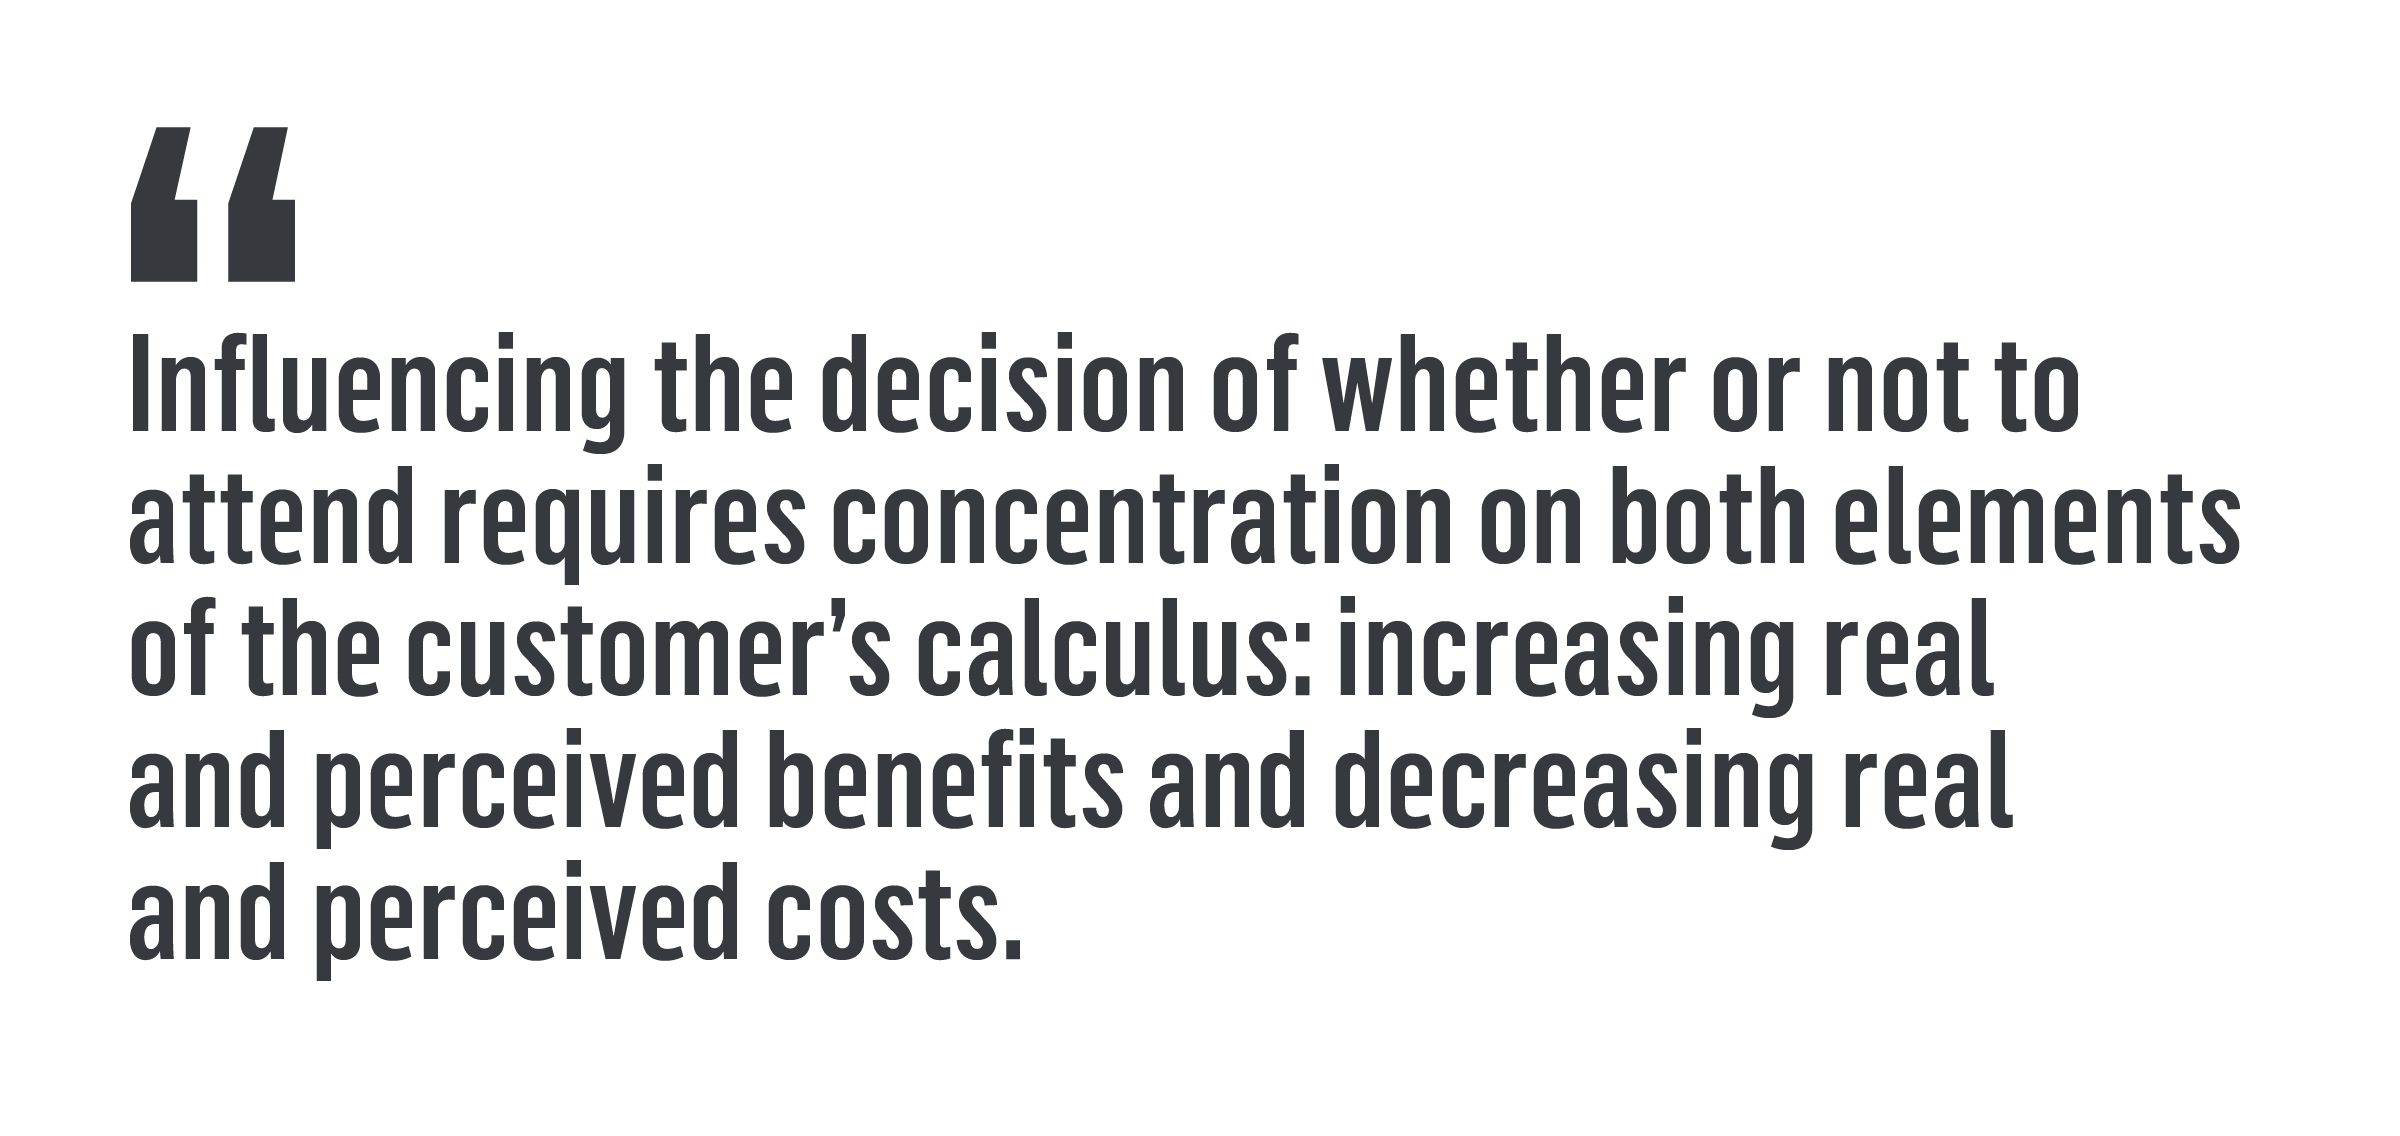 """""""Influencing the decision of whether or not to attend requires concentration on both elements of the customer's calculus: increasing real and perceived benefits and decreasing real and perceived costs."""""""